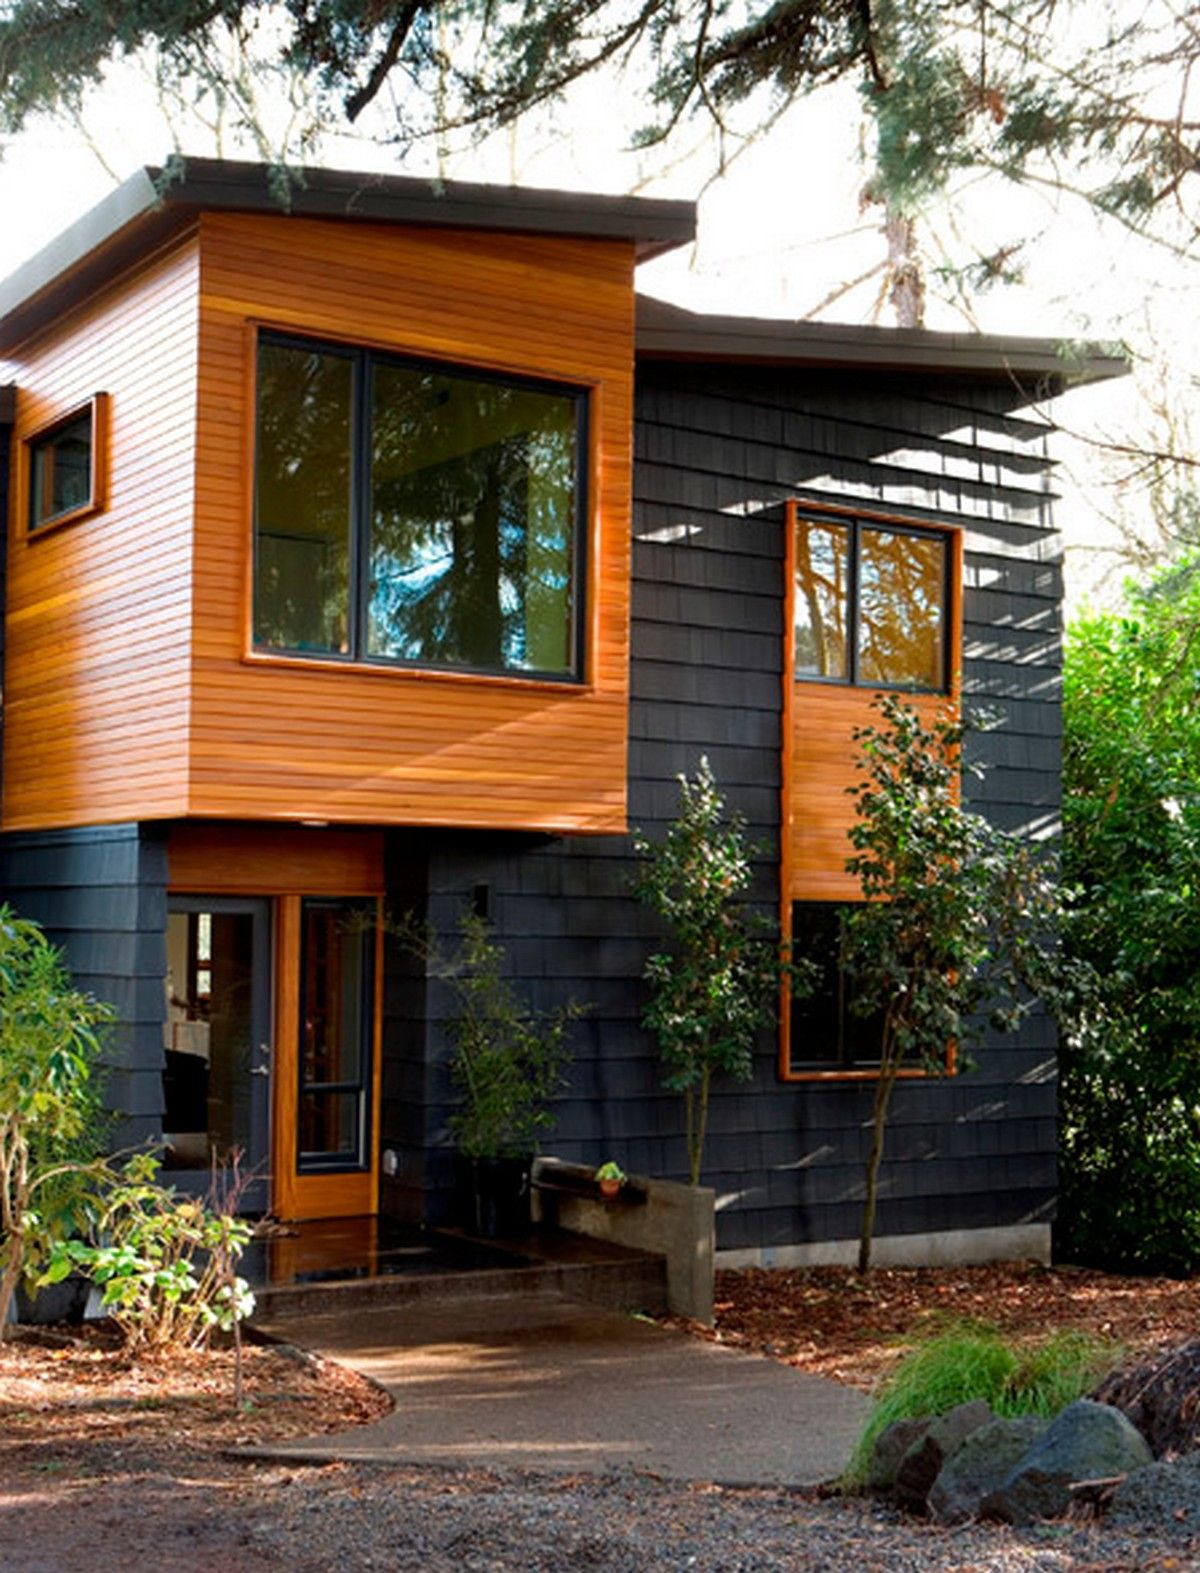 Awesome 41 Wood Rustic Interior In The House Design House Exterior Luxury House Designs House Design